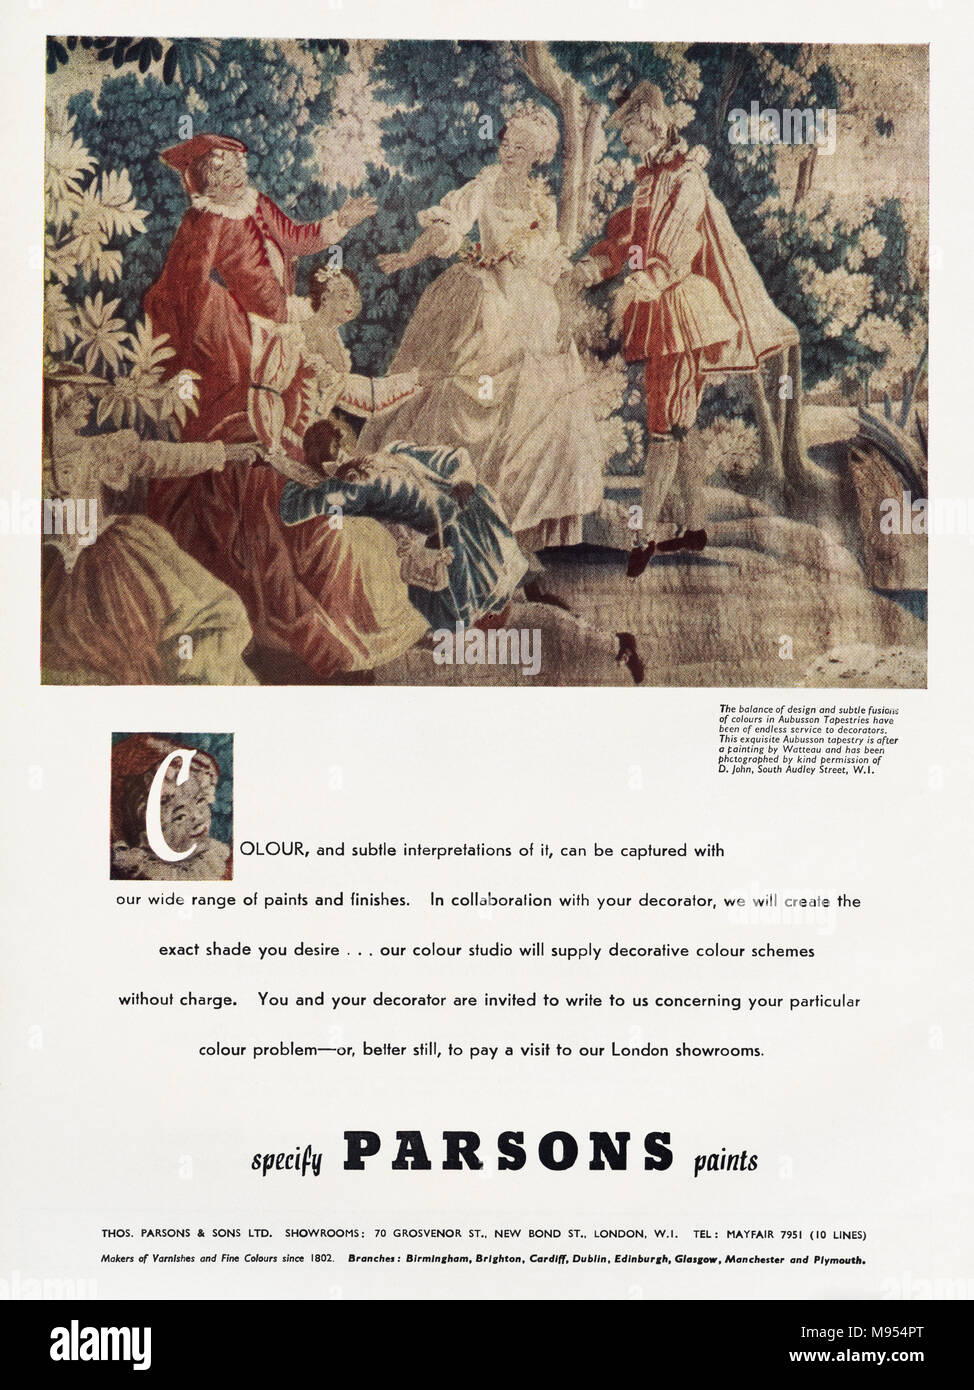 1950s original old vintage advertisement advertising Parsons paints in English magazine circa 1951 - Stock Image